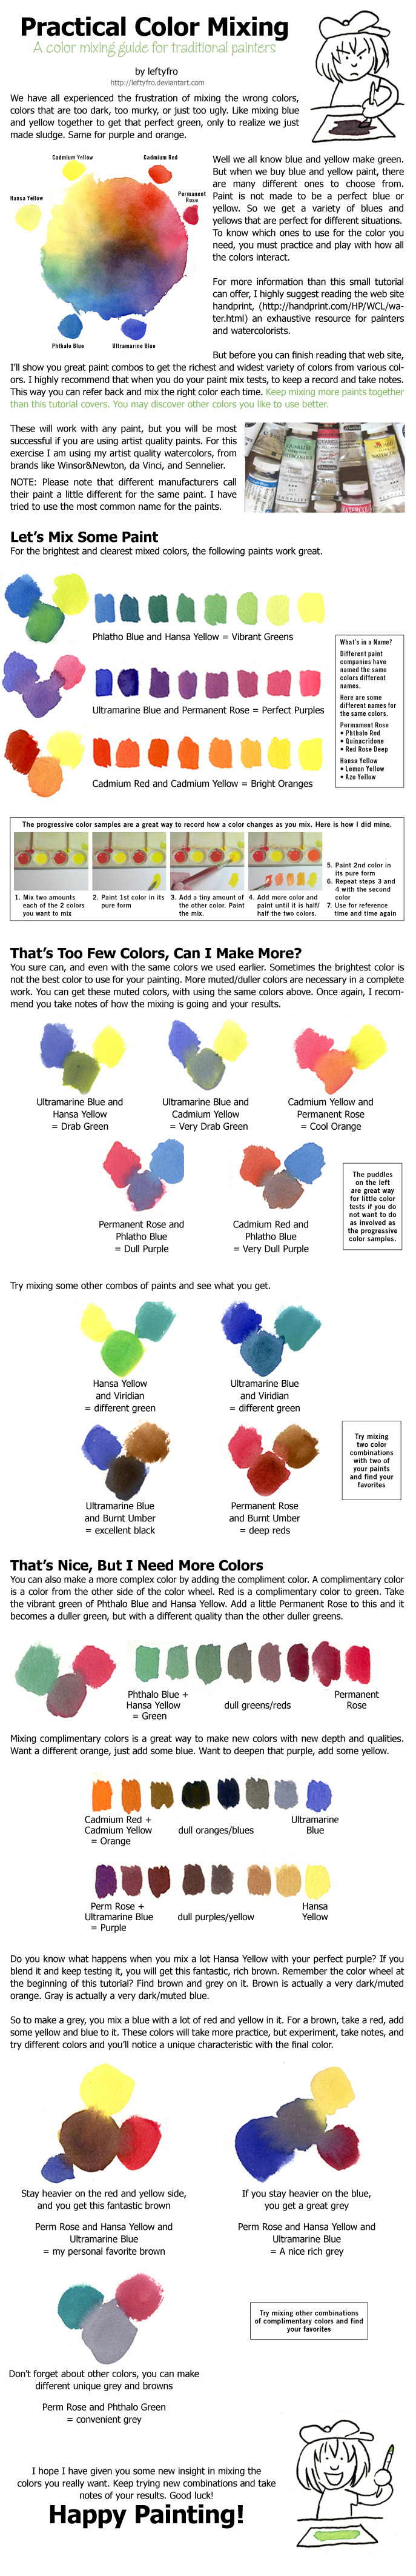 Practical Colors Tutorial by KelliRoos